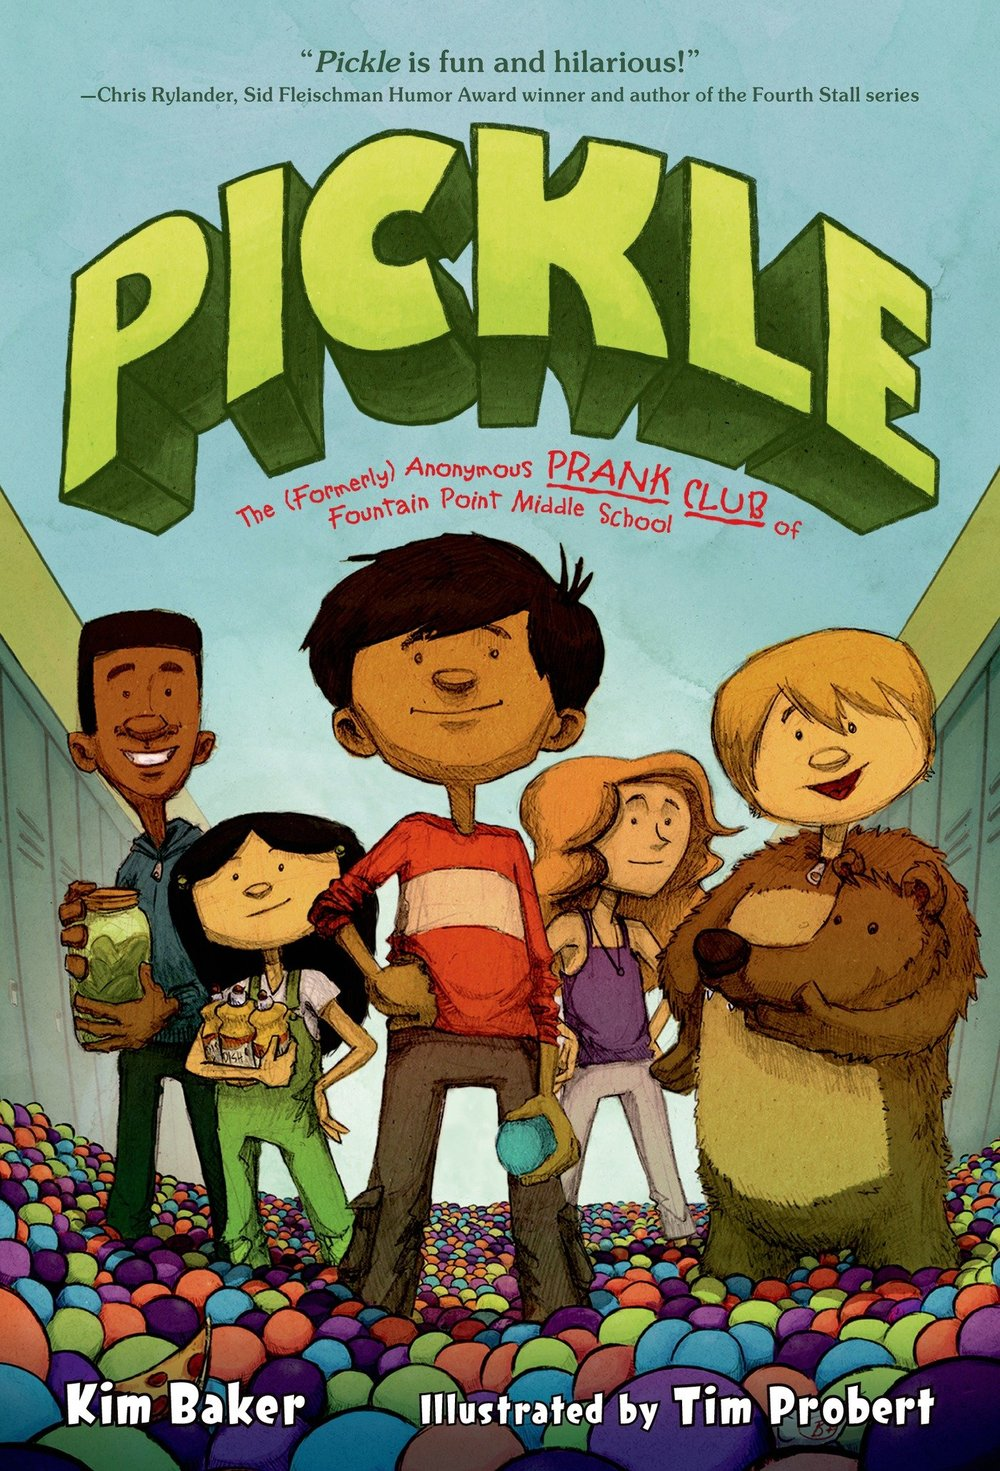 Pickle: The (Formerly) Anonymous Prank Club of Fountain Point Middle School   by Kim Baker